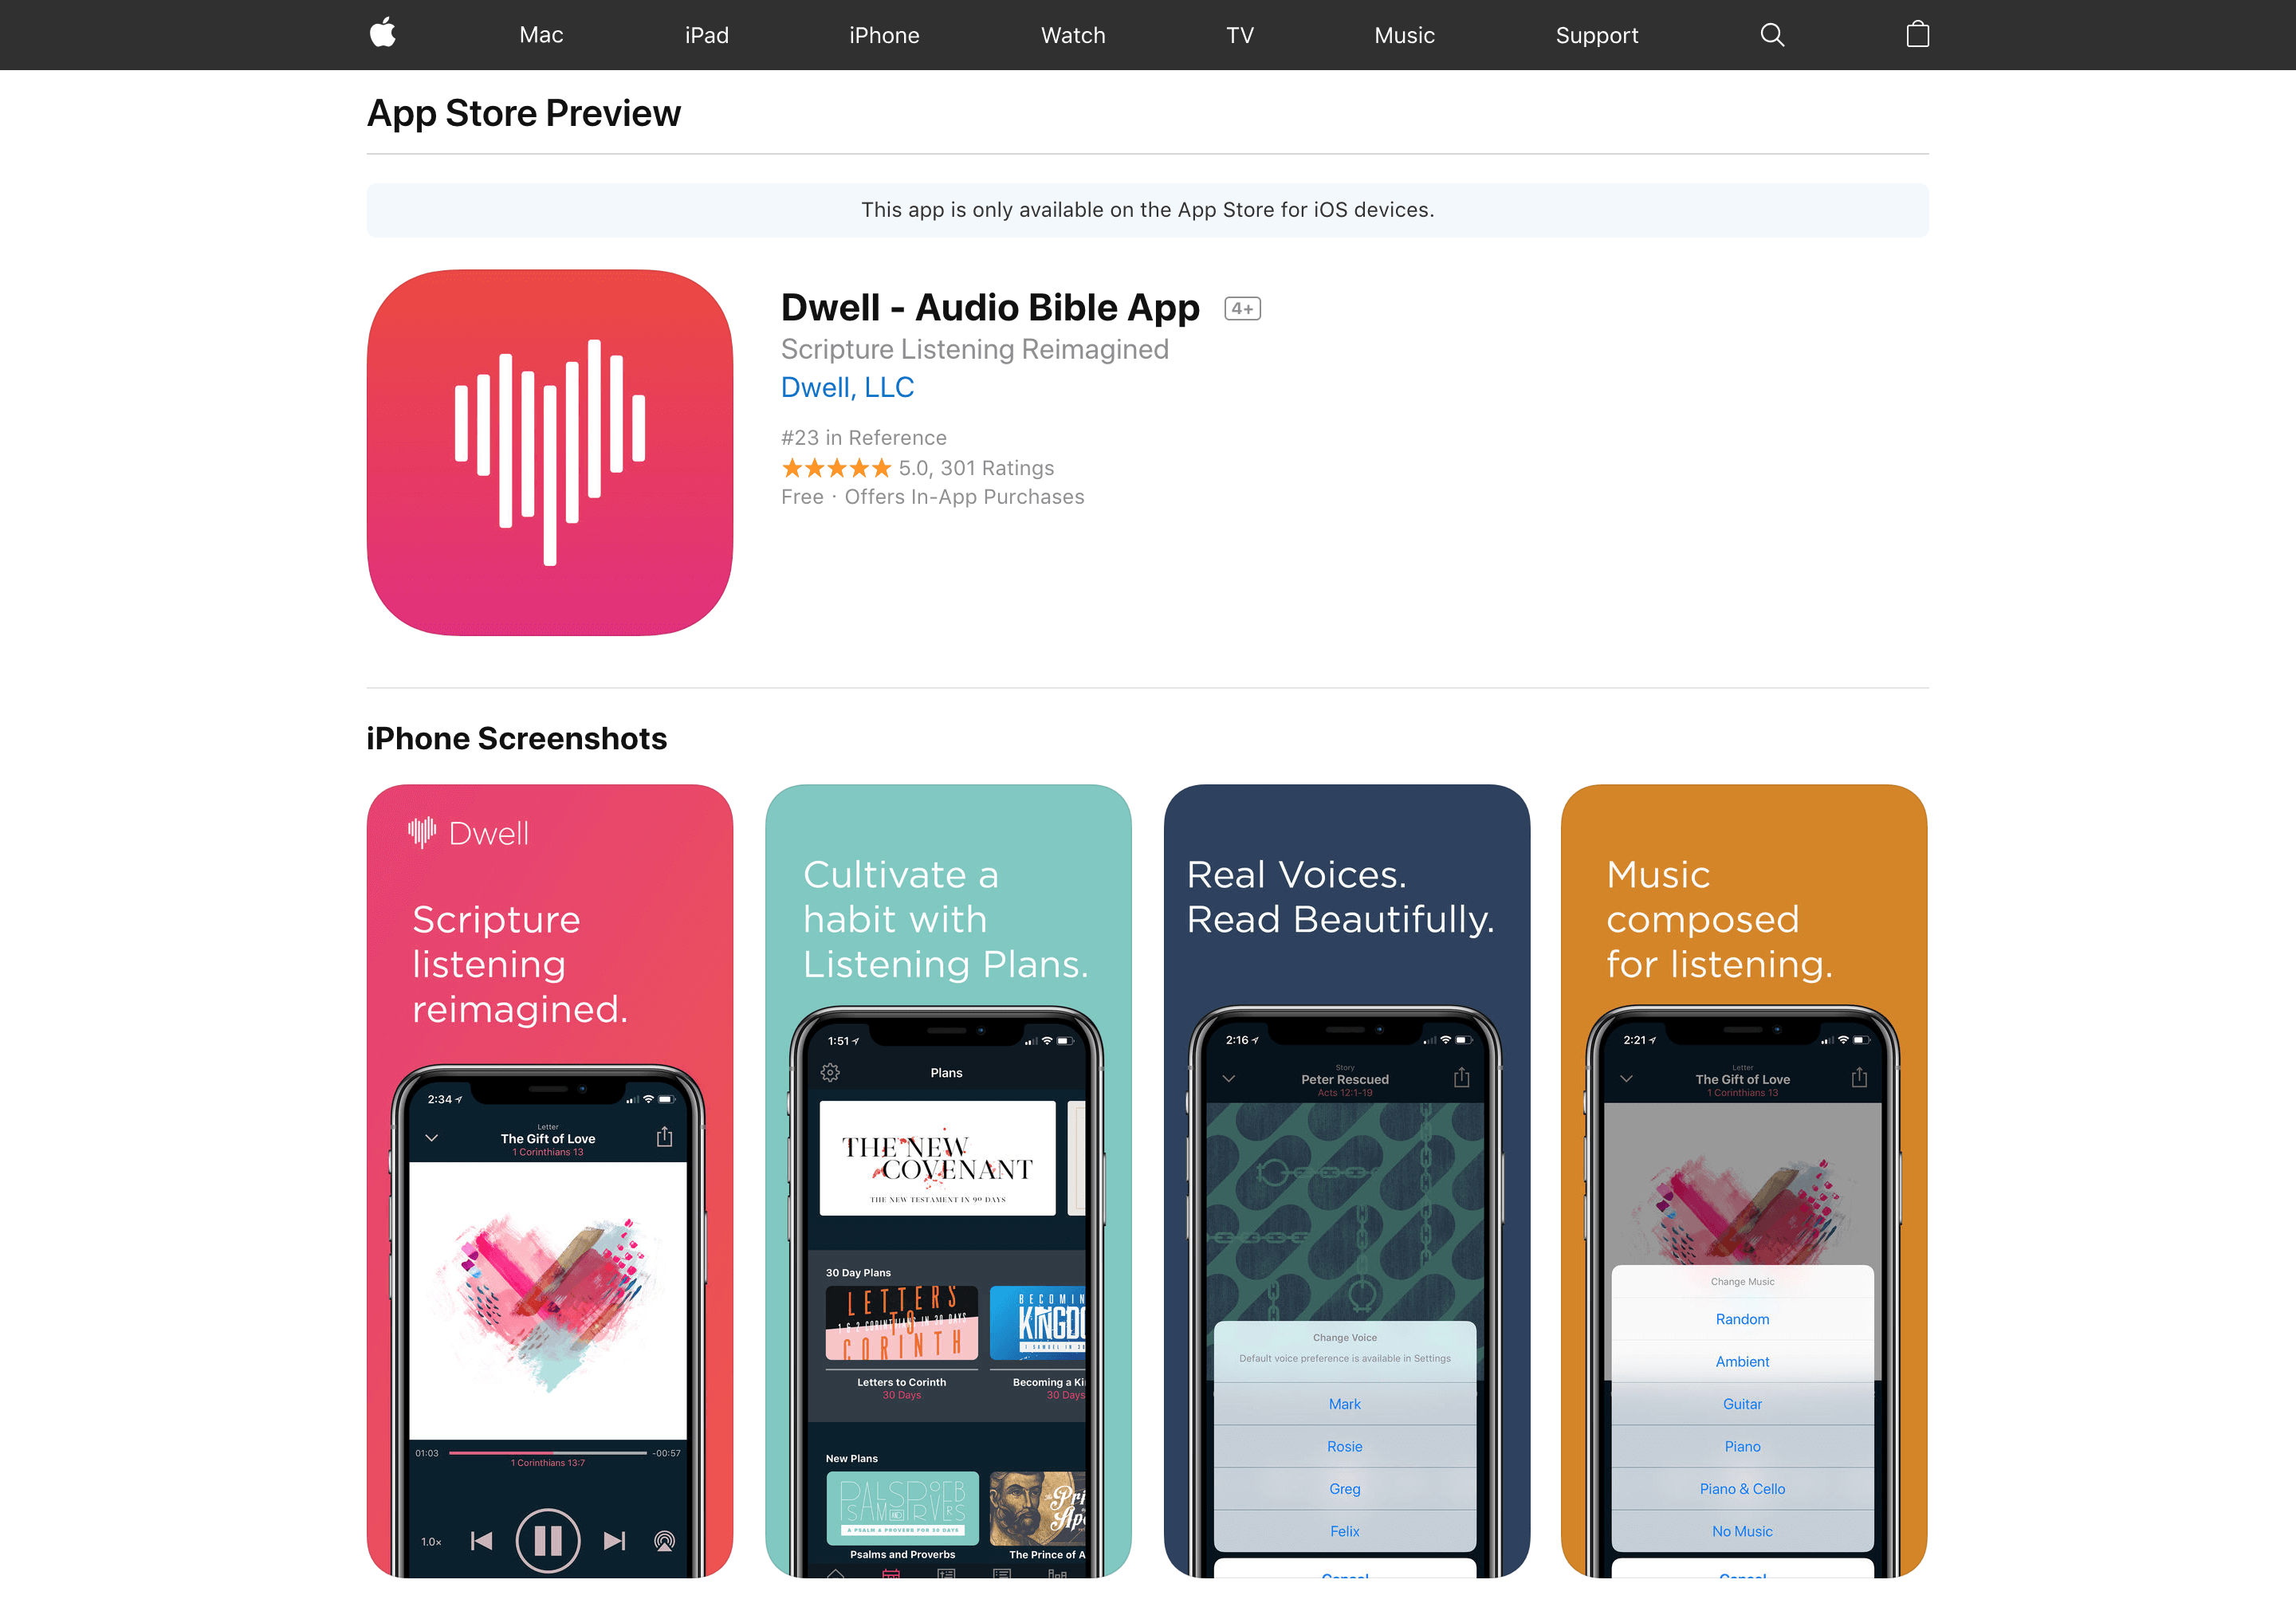 Dwell in the App Store